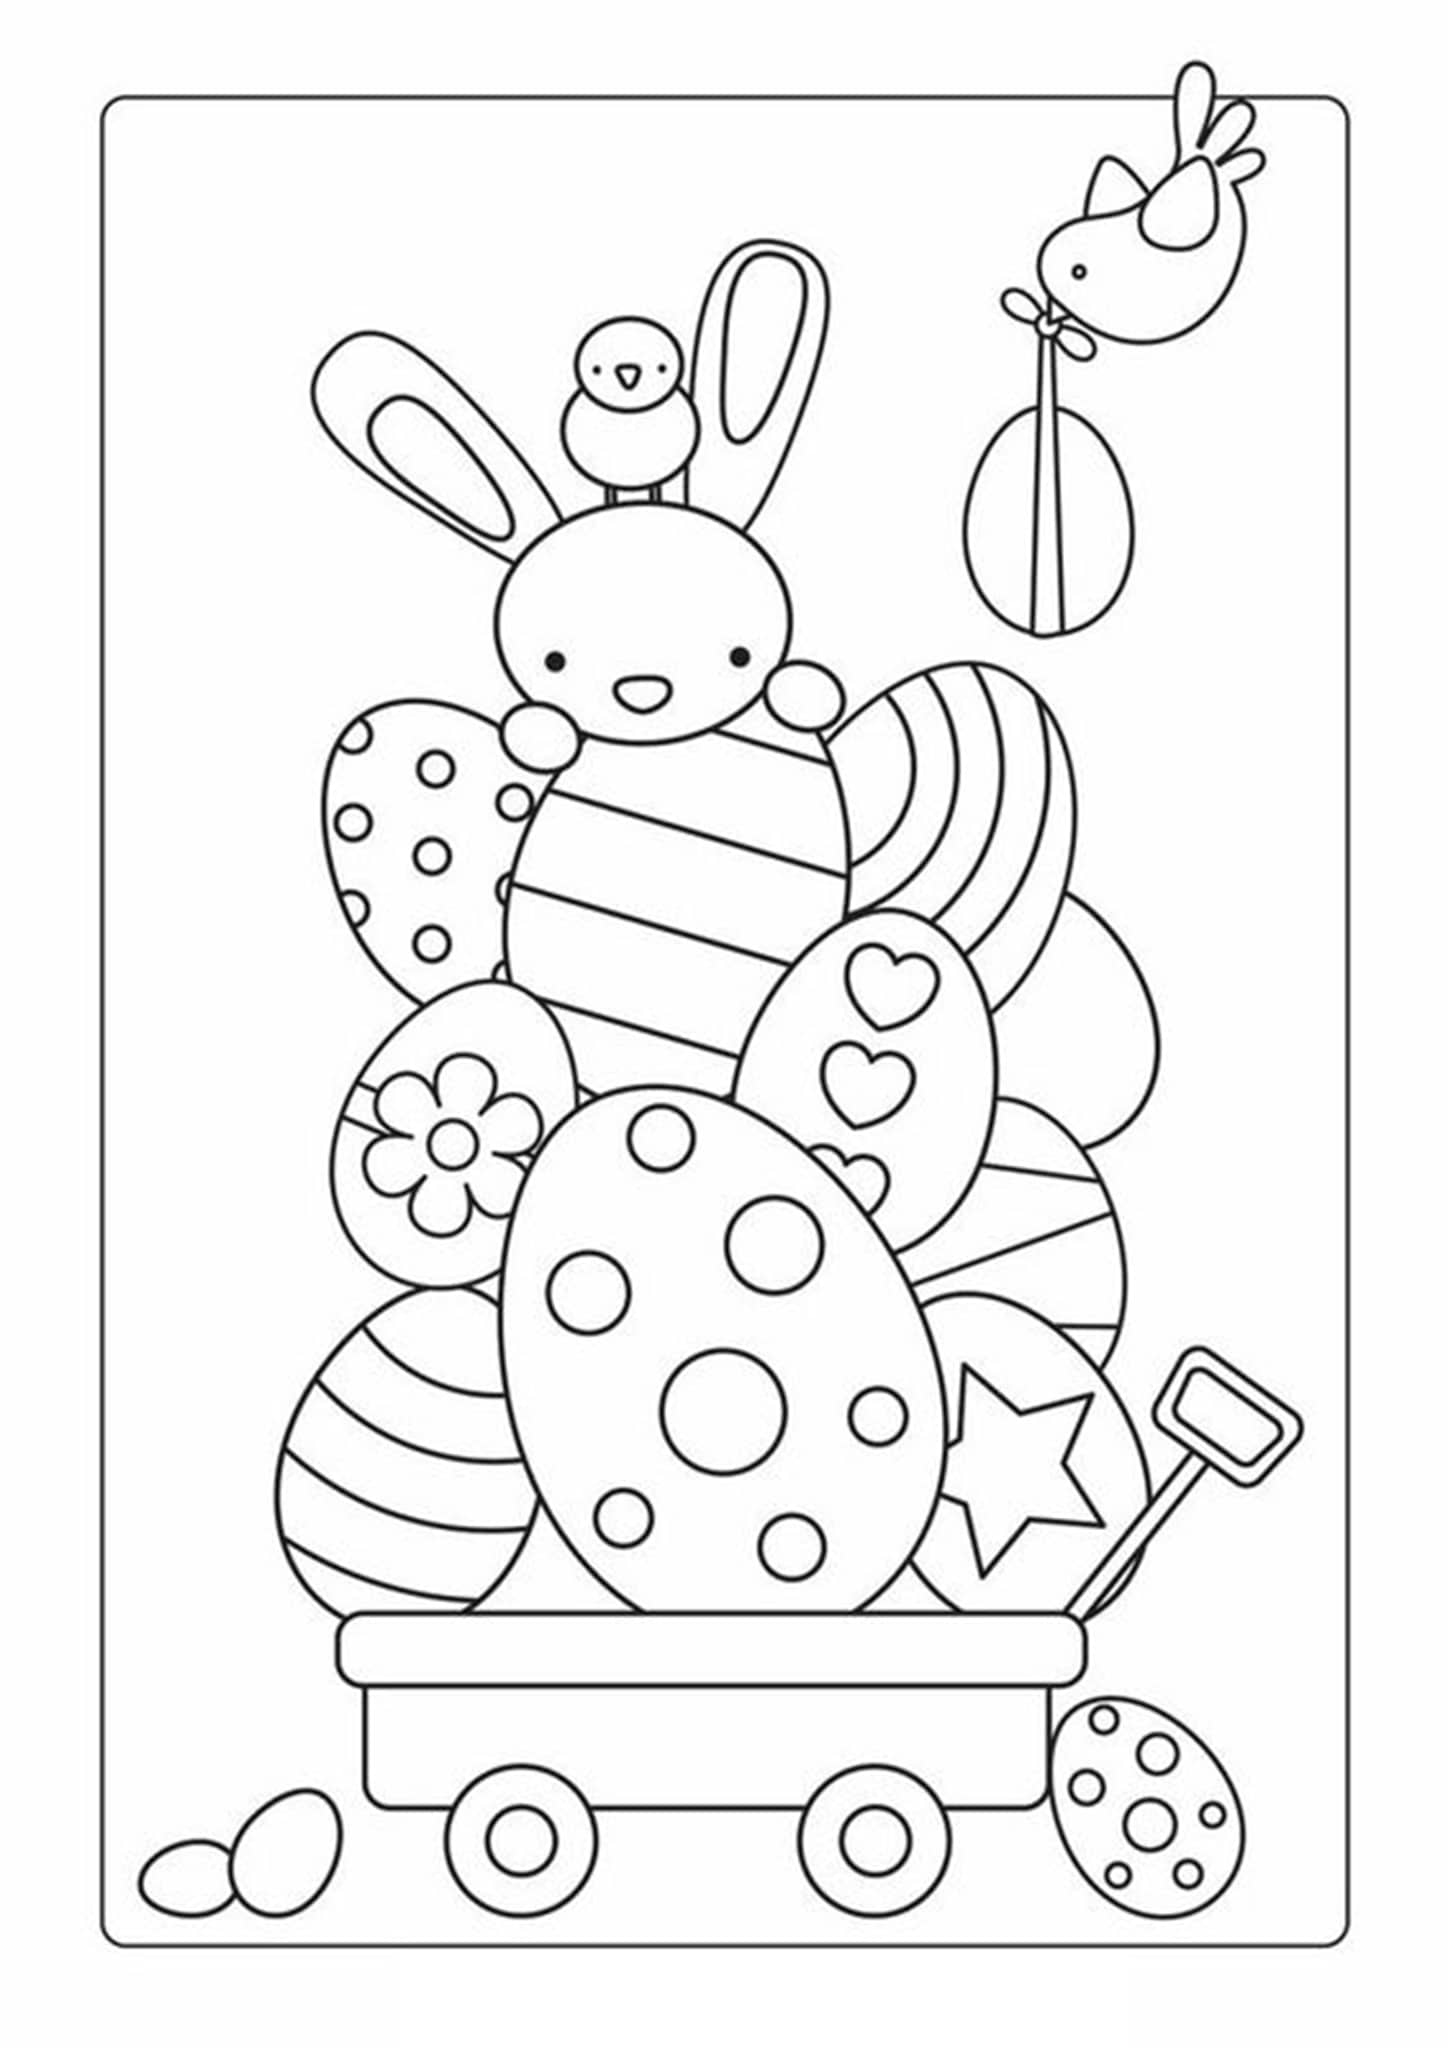 free easy coloring pages free easy to print owl coloring pages tulamama coloring pages easy free